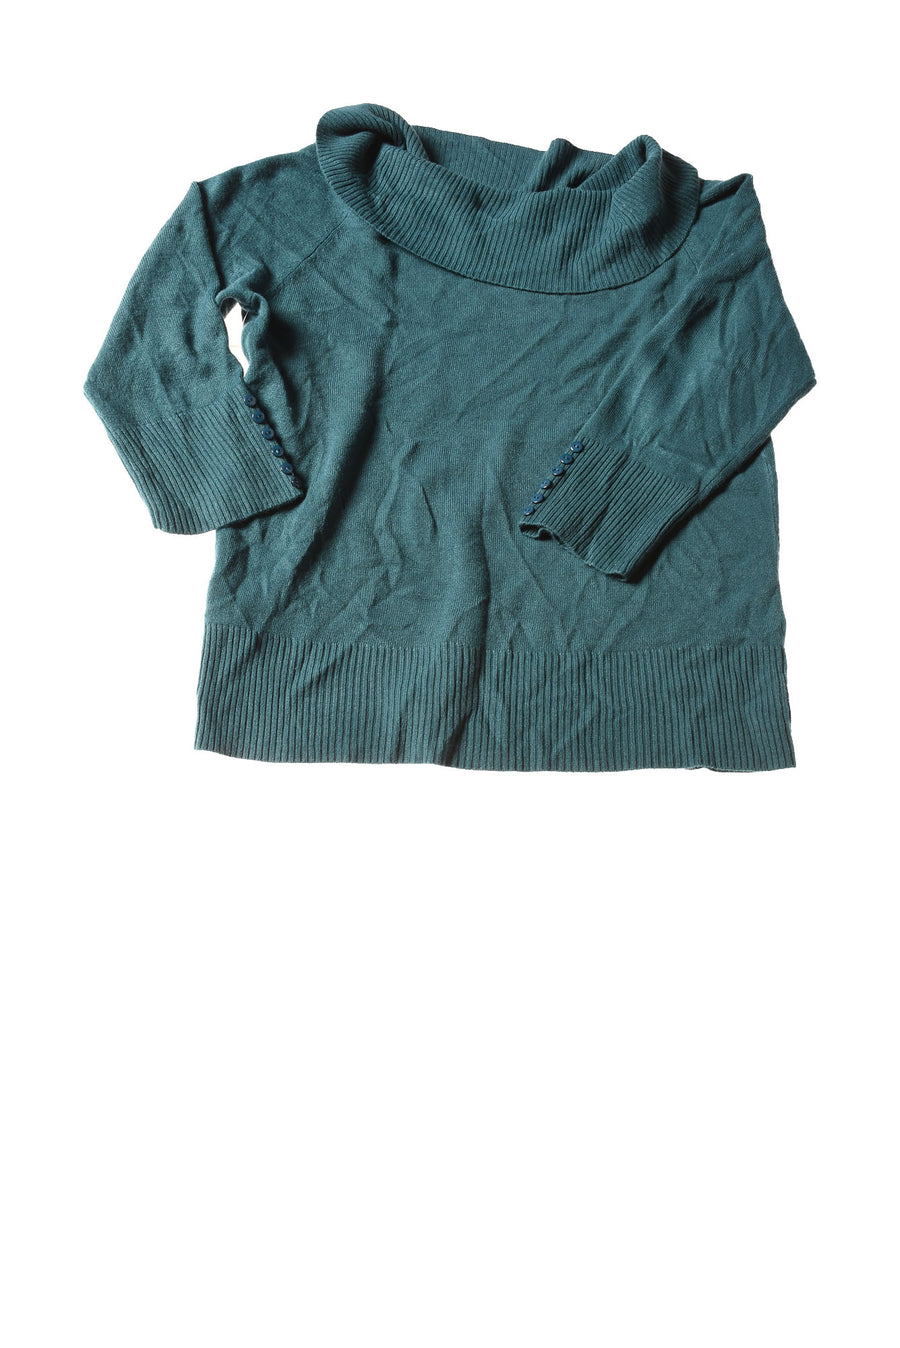 NEW Debbie Morgan Women's Sweater Large Teal